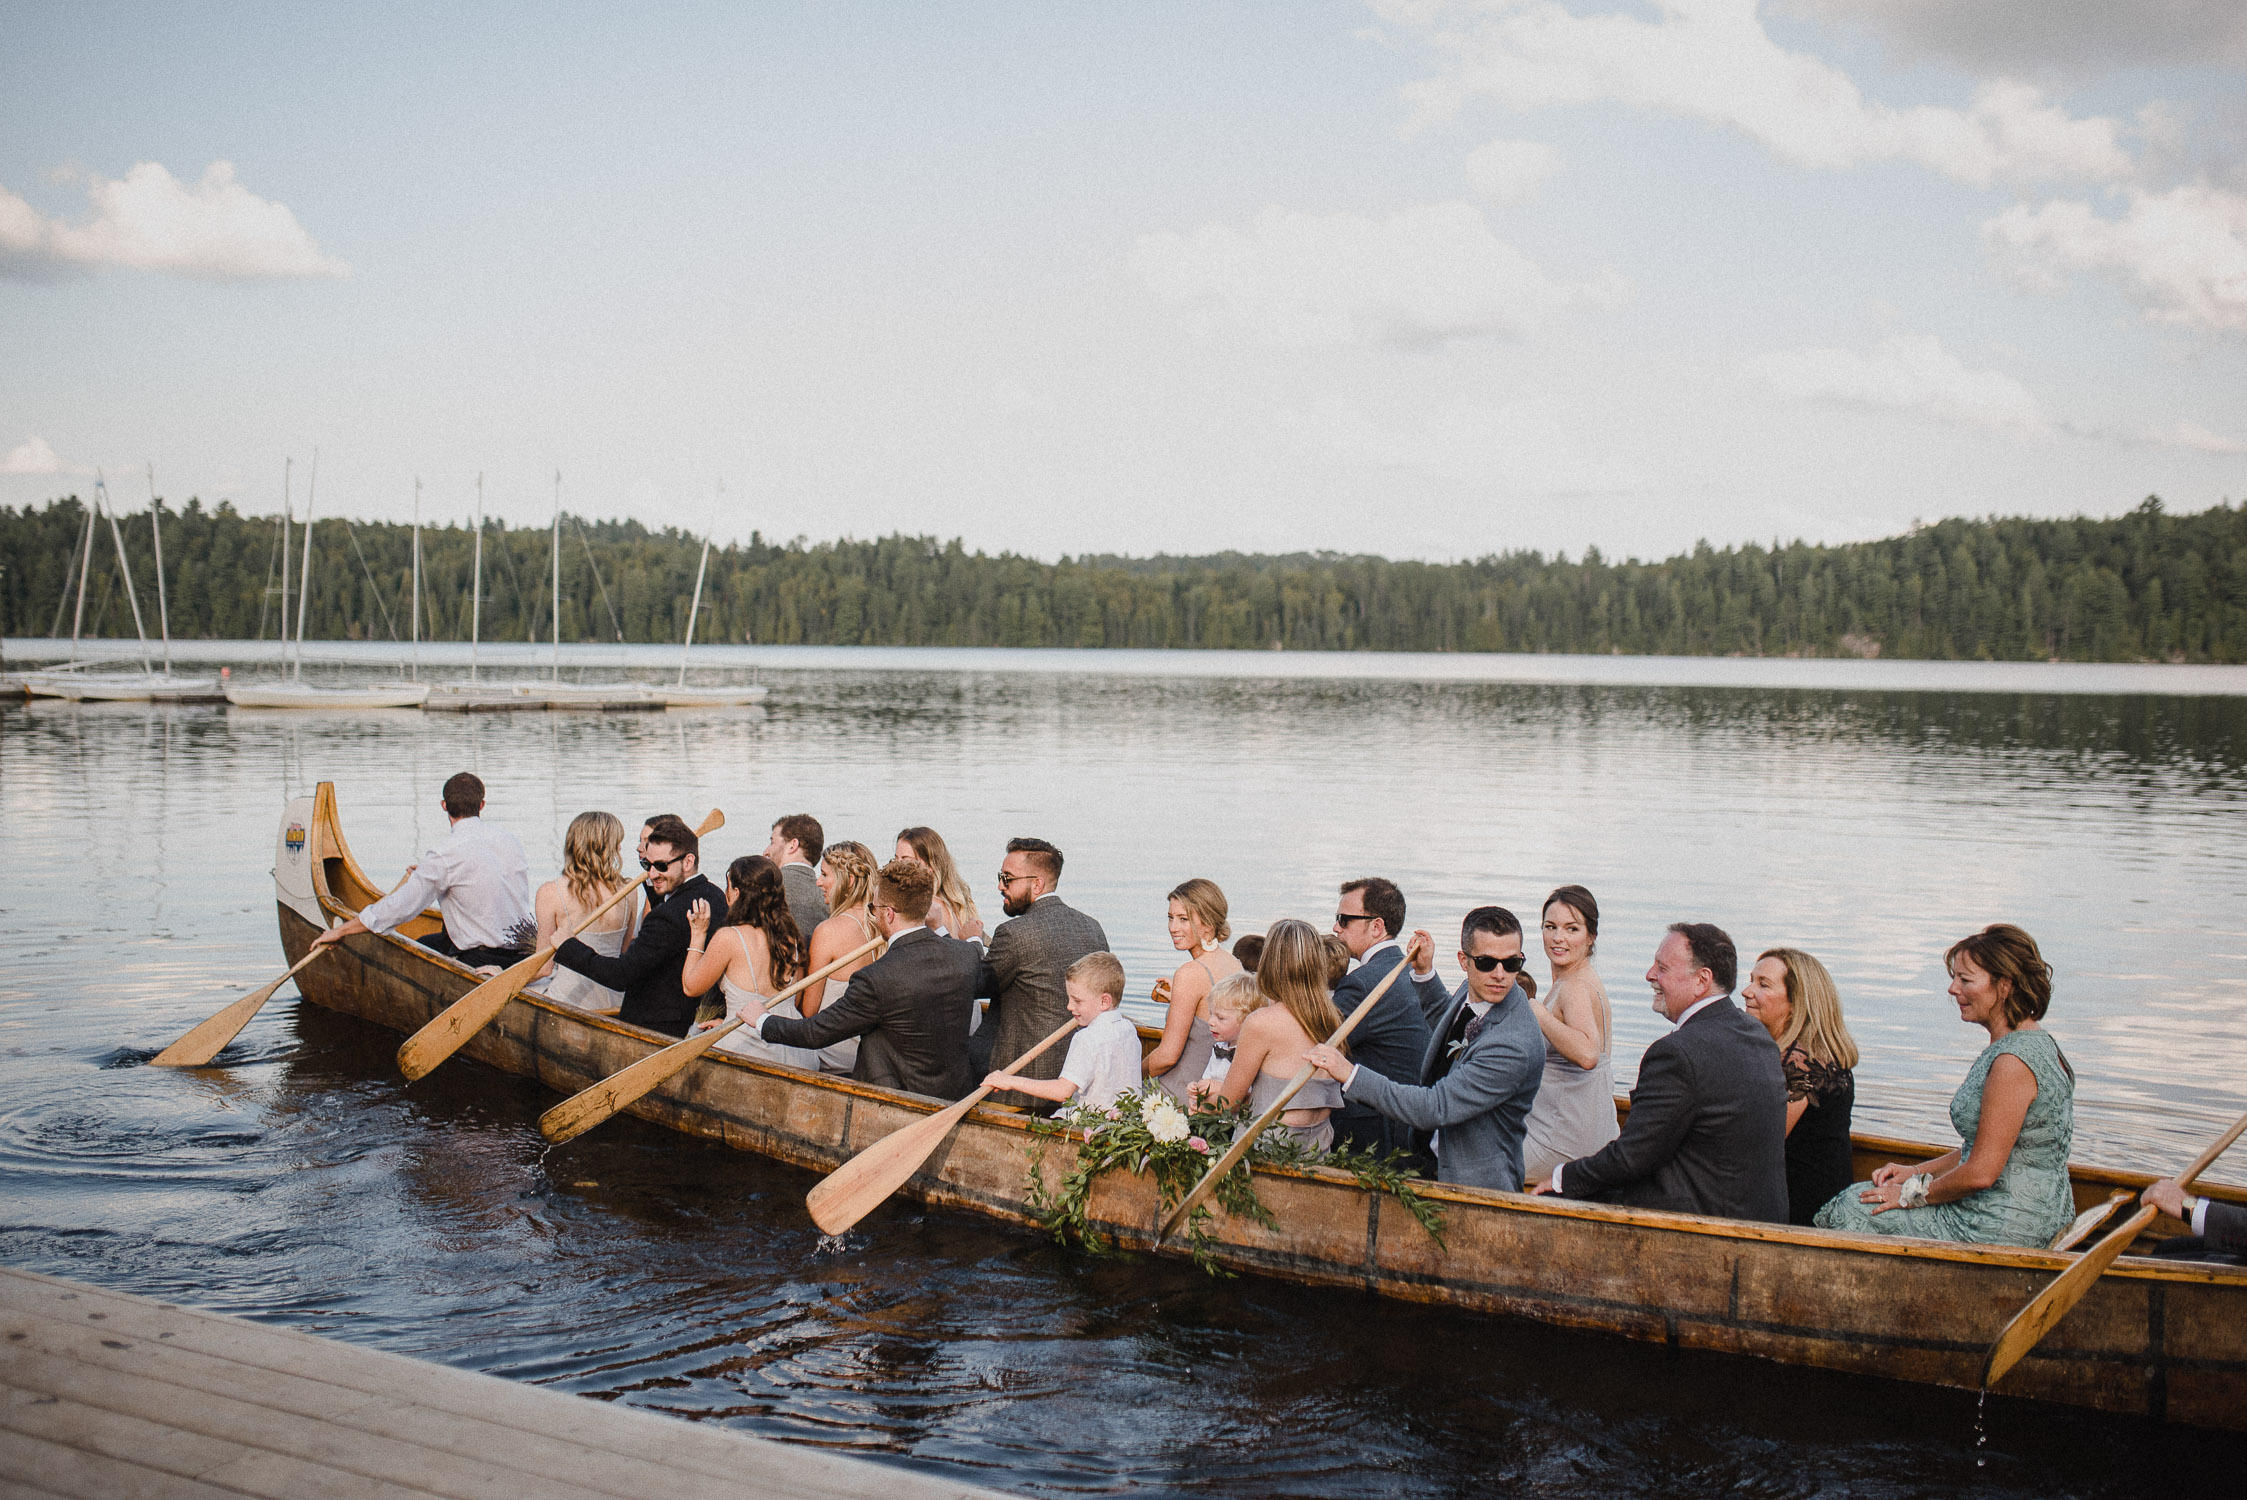 The wedding party takes a canoe to the wedding ceremony at Arowhon Summer Camp.